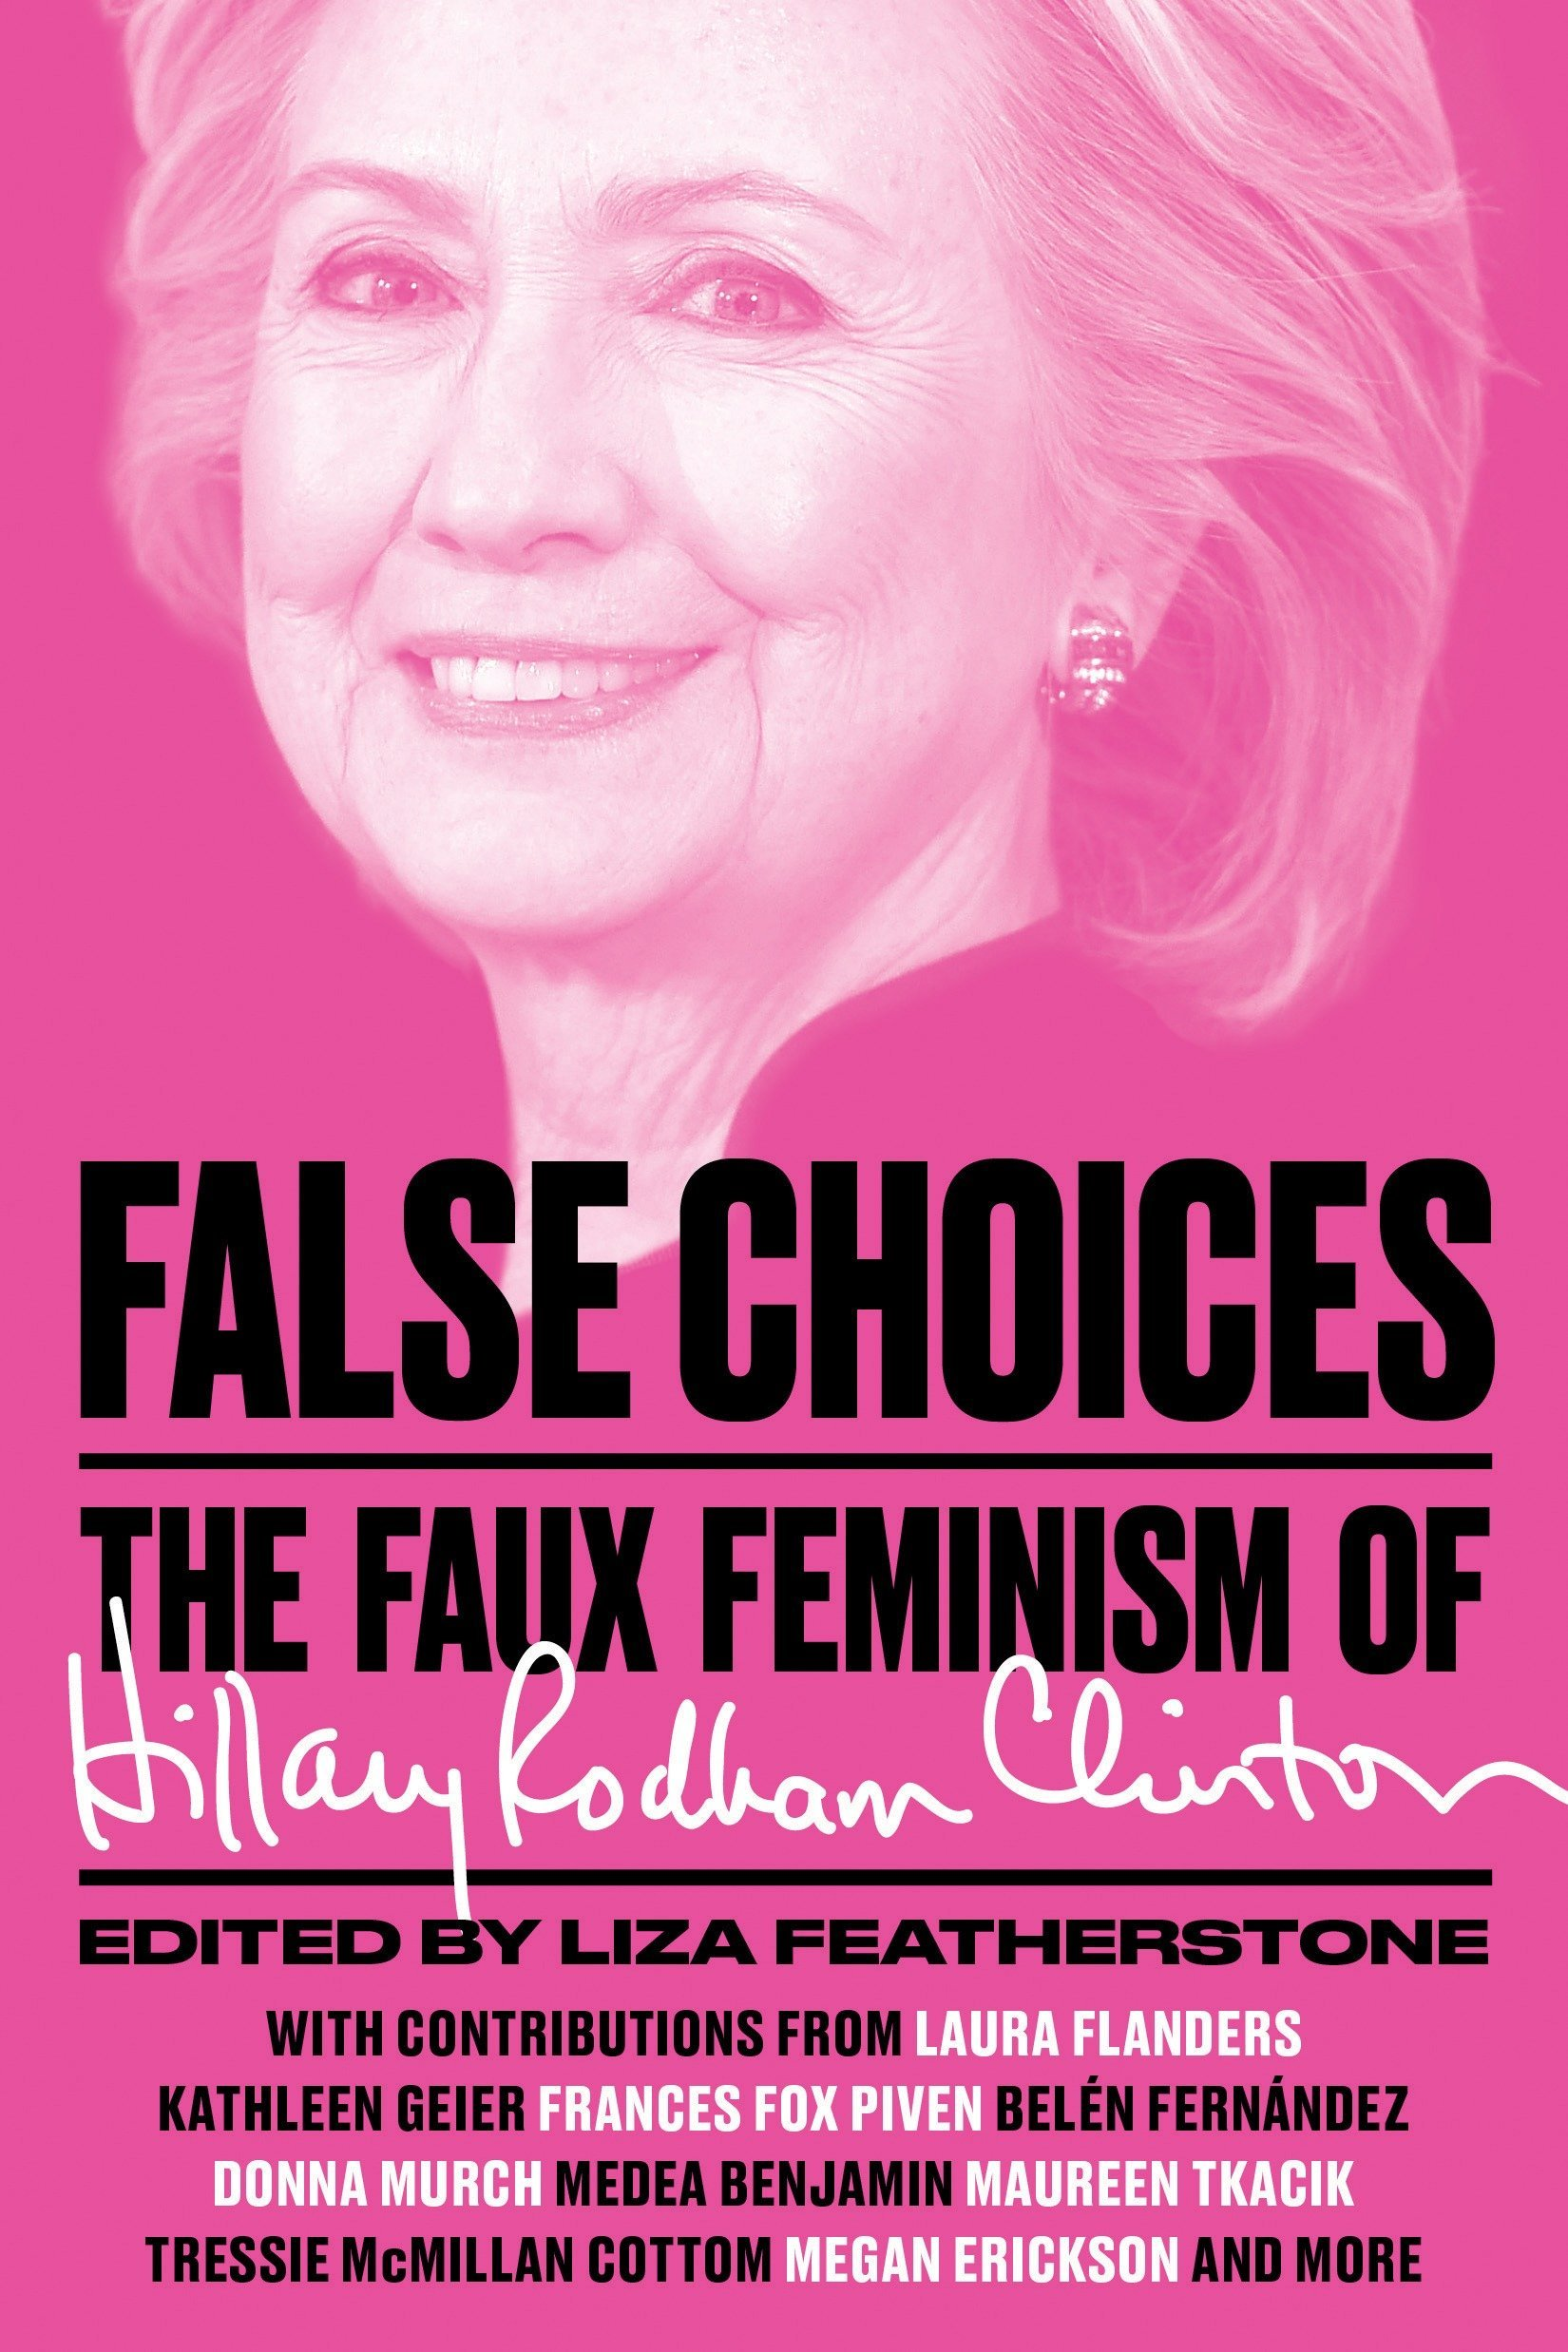 False Choices The Faux Feminism Of Hillary Rodham Clinton Liza